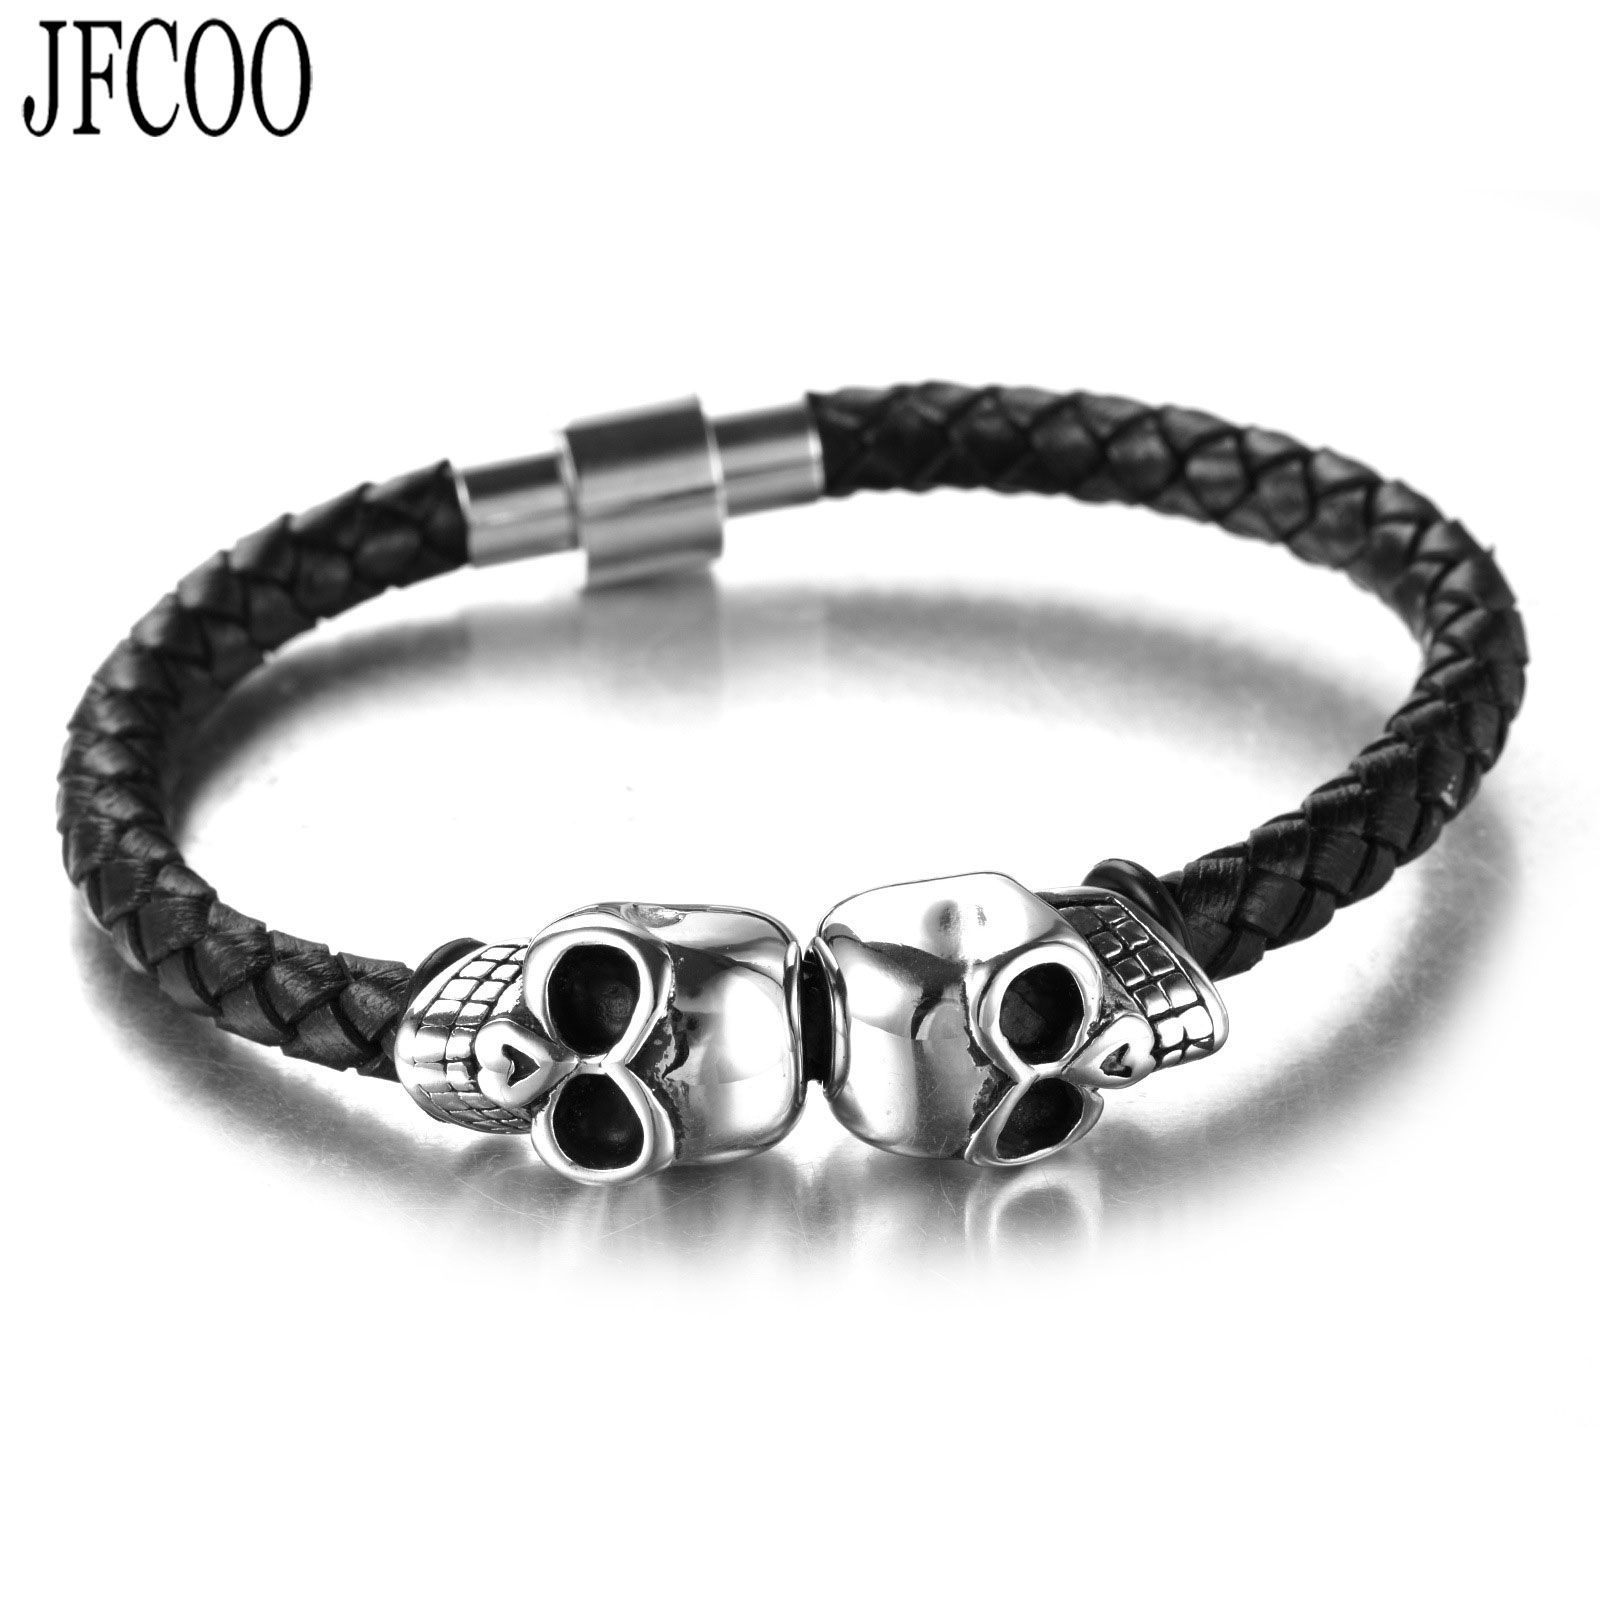 Europe Stainless Steel Charm Double Skulls men Bracelets Genuine Leather Rope Magnetic clasp bracelet Dropshipping